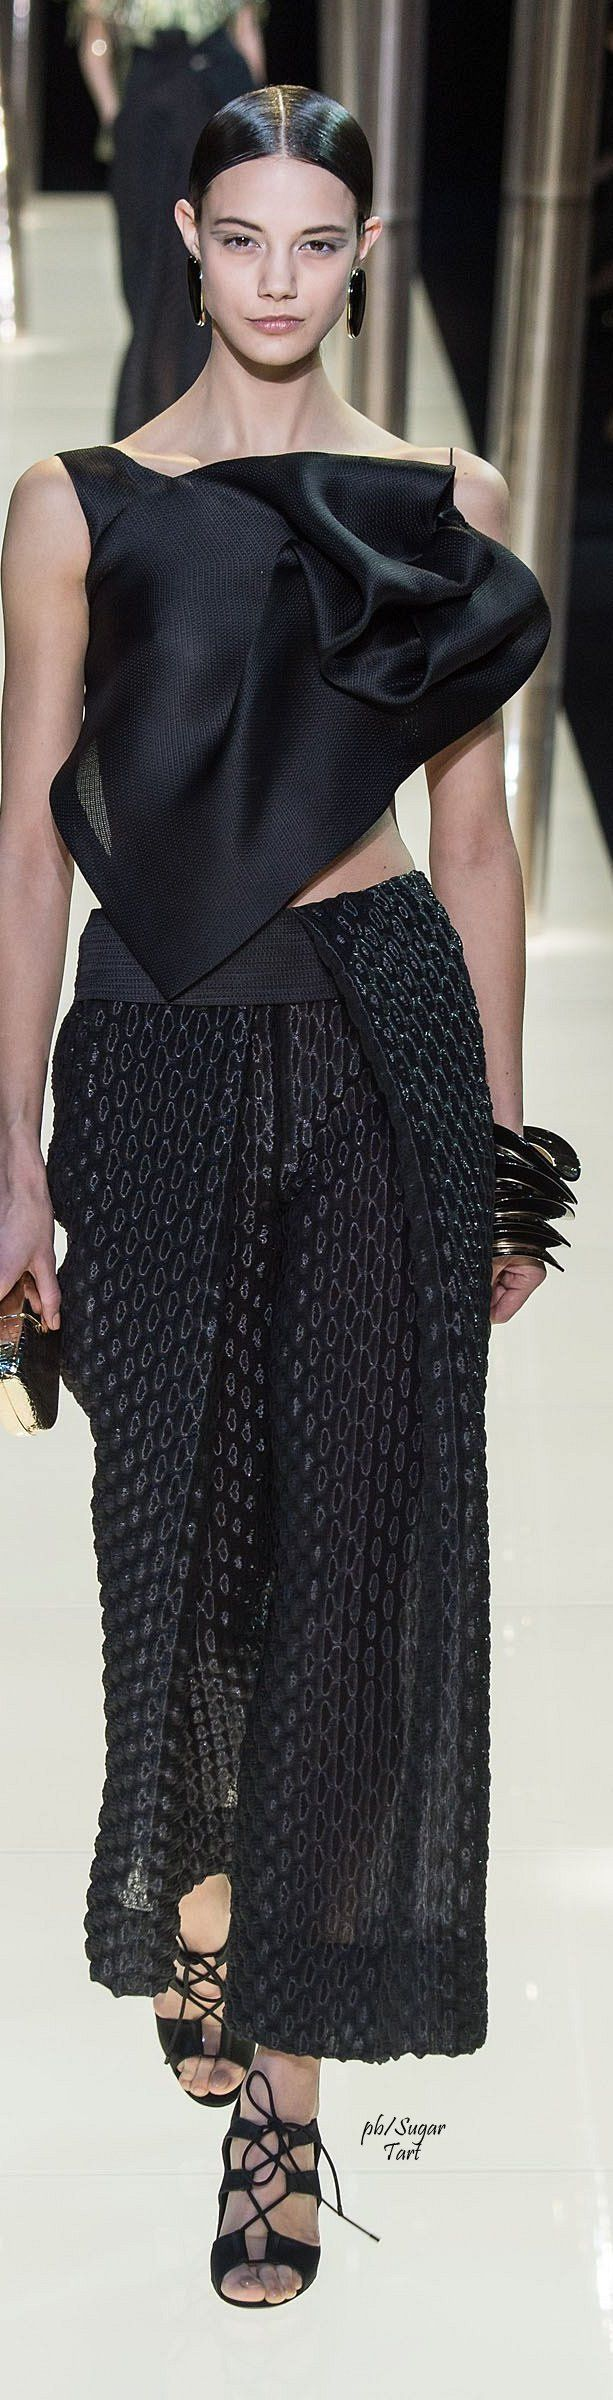 NW ♥ ♥ ♥ Nimrodt Wolfenstein Armani Prive S/S 2015 Couture